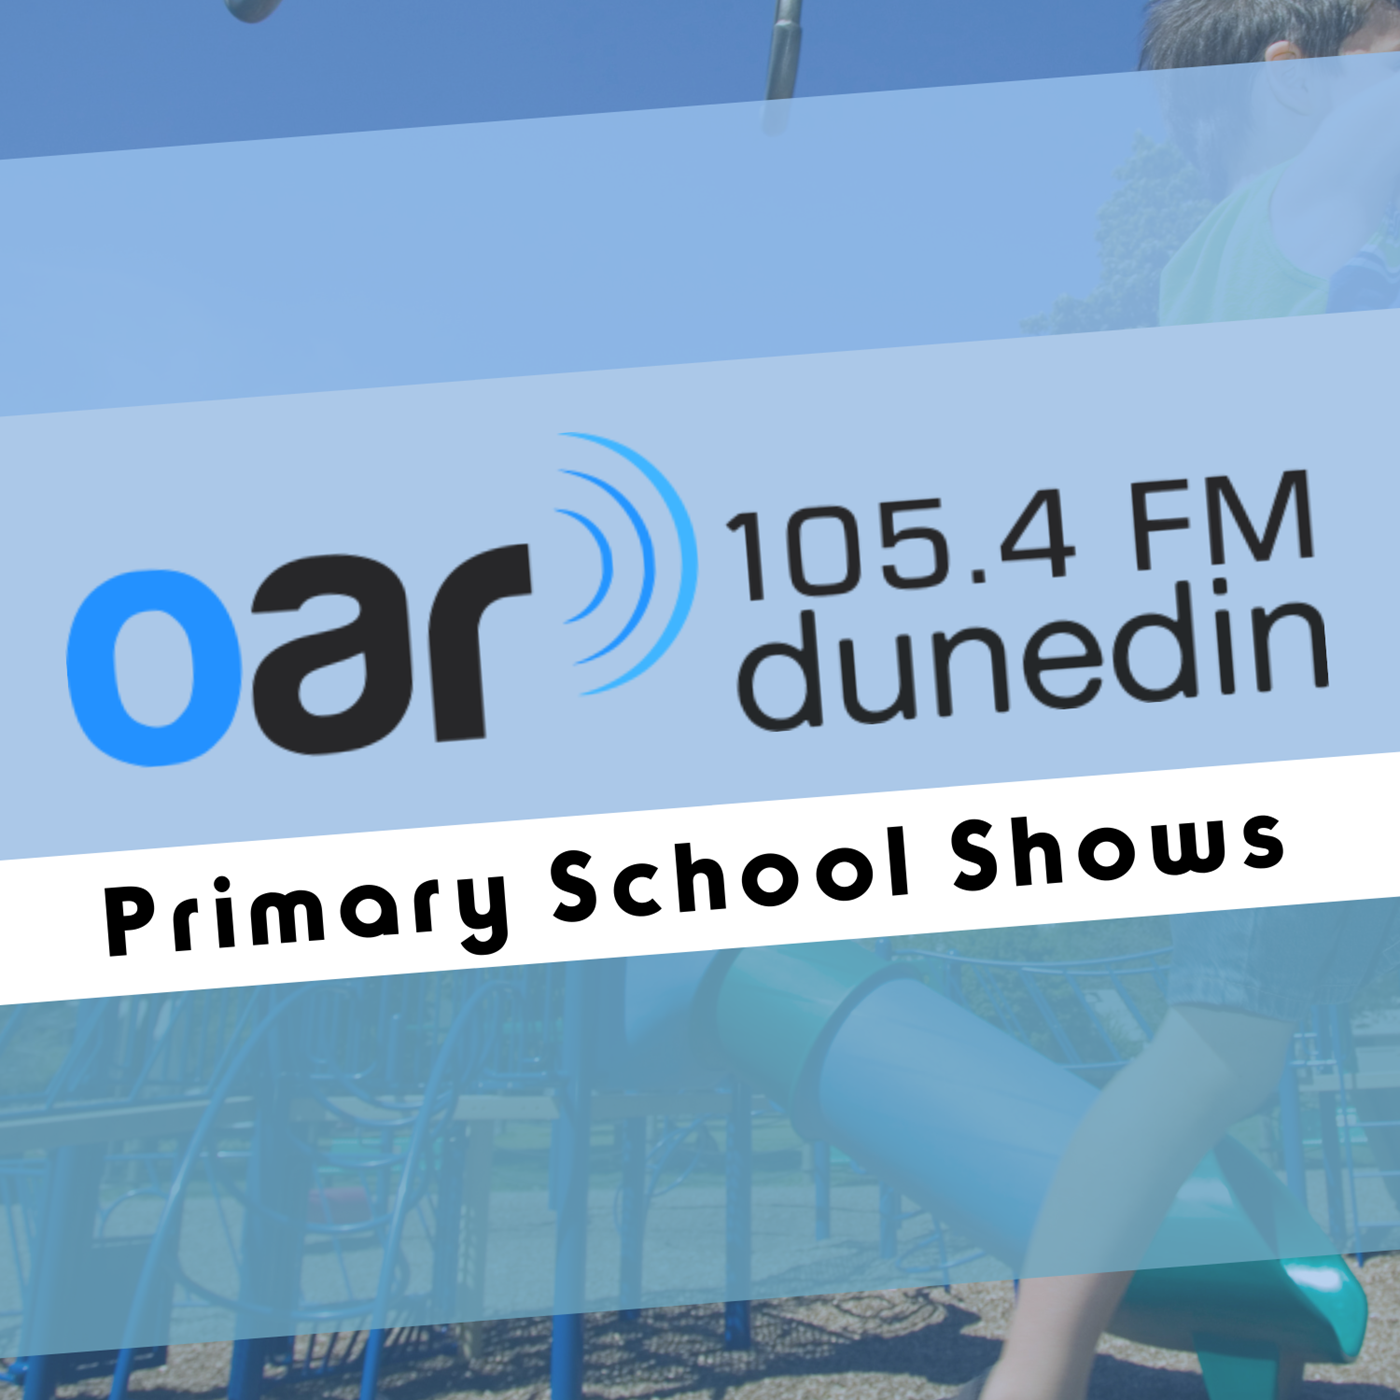 Dunedin Primary School Shows - 14-12-2019 - Book Tales